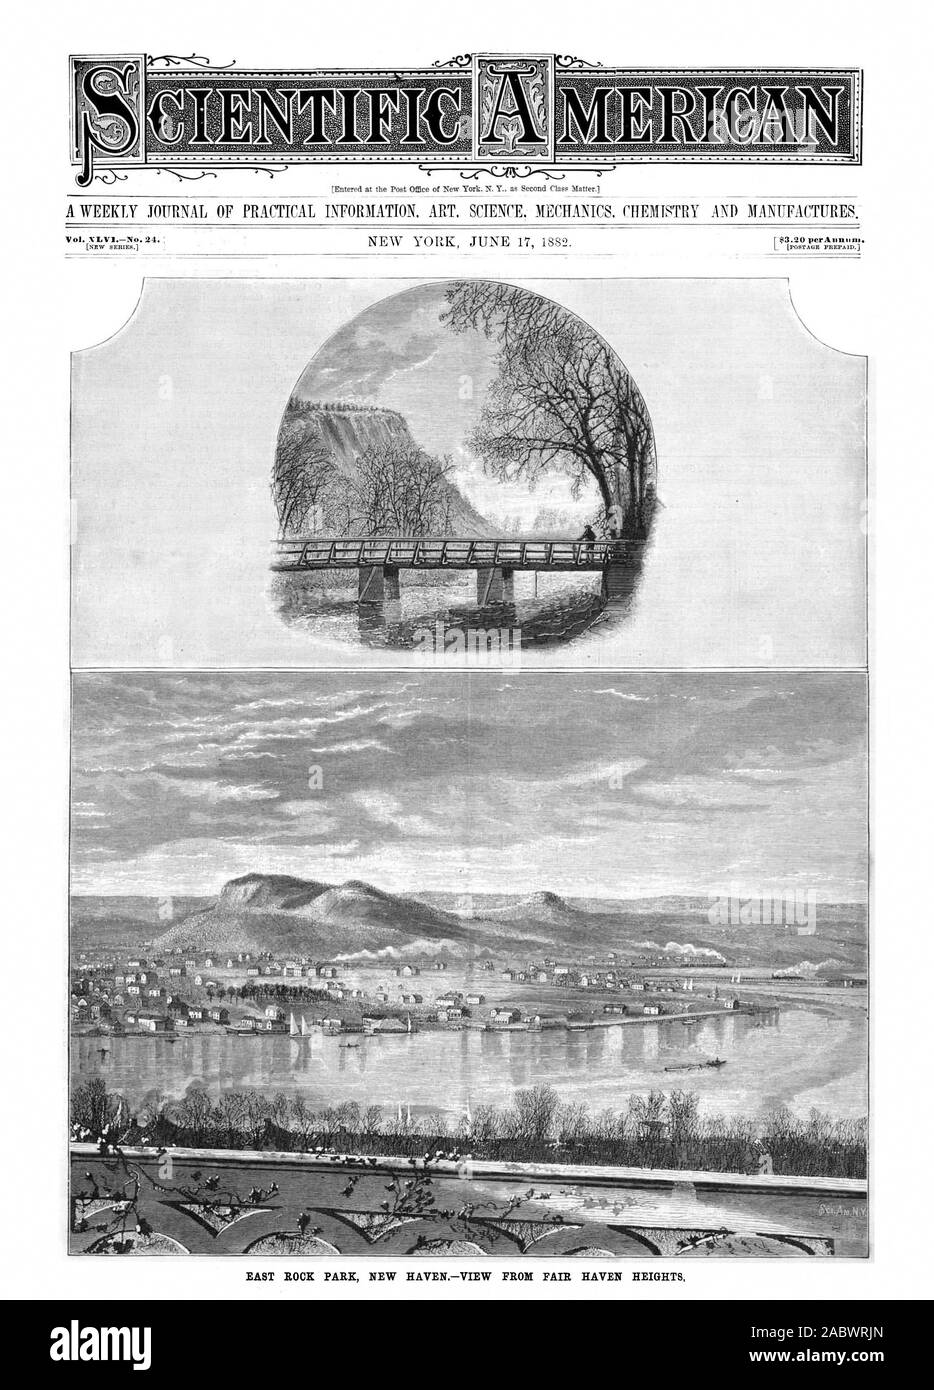 v. QTENTIFI EAST ROCK PARK NEW HAVEN.-VIEW FROM FAIR HAVEN HEIGHTS, scientific american, 1882-06-17 Stock Photo